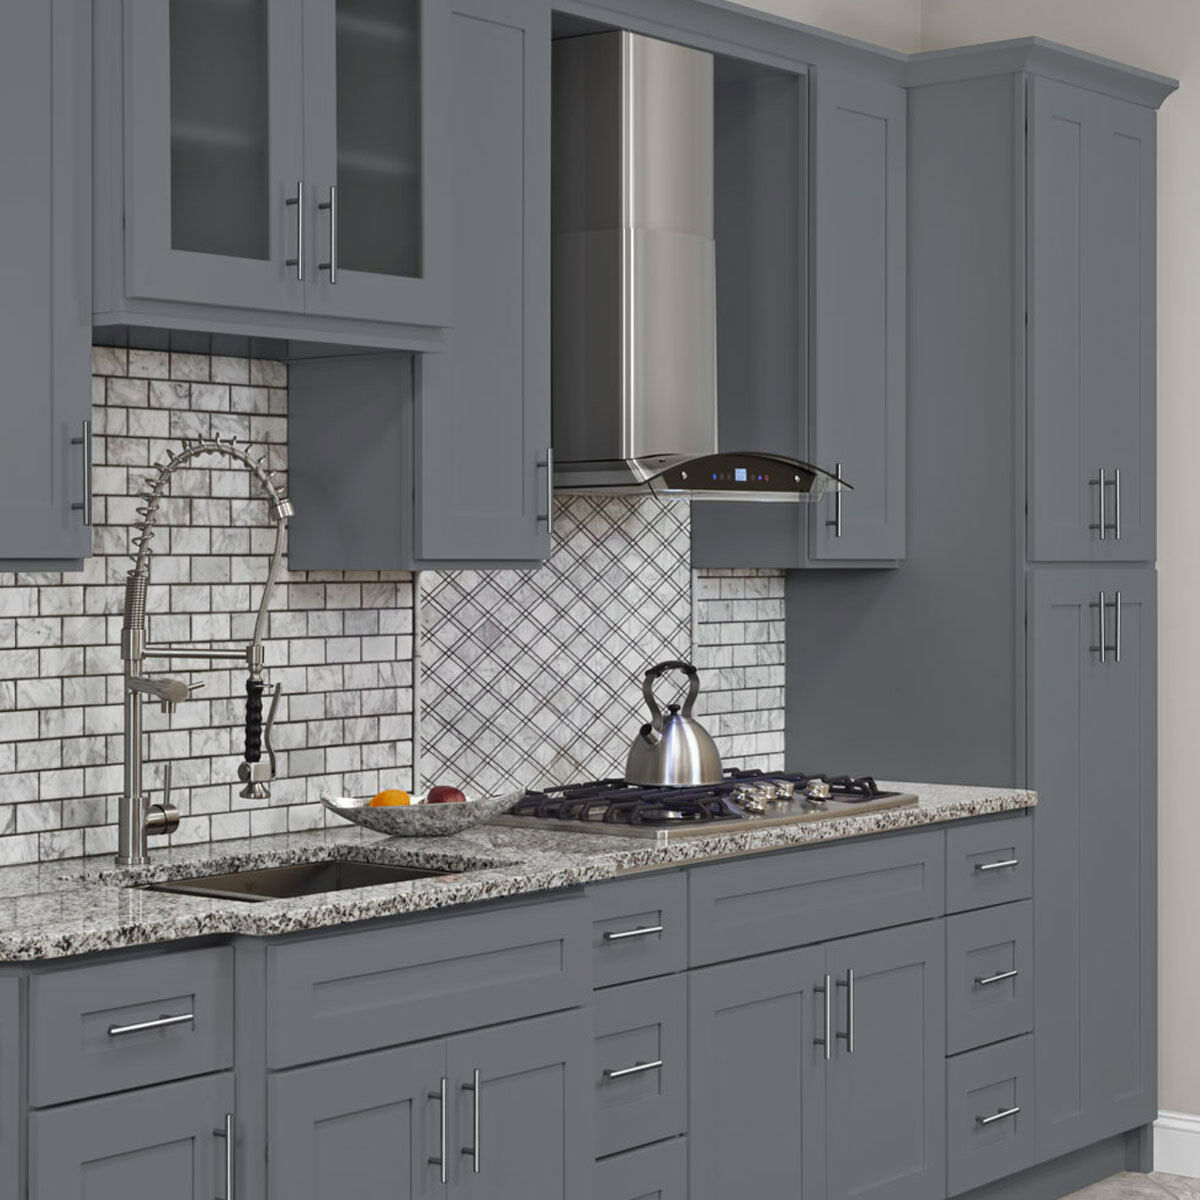 Sale Kitchen Cabinets 10x10 All Wood Kitchen Cabinets Colonial Gray Fully Upgraded Group Sale